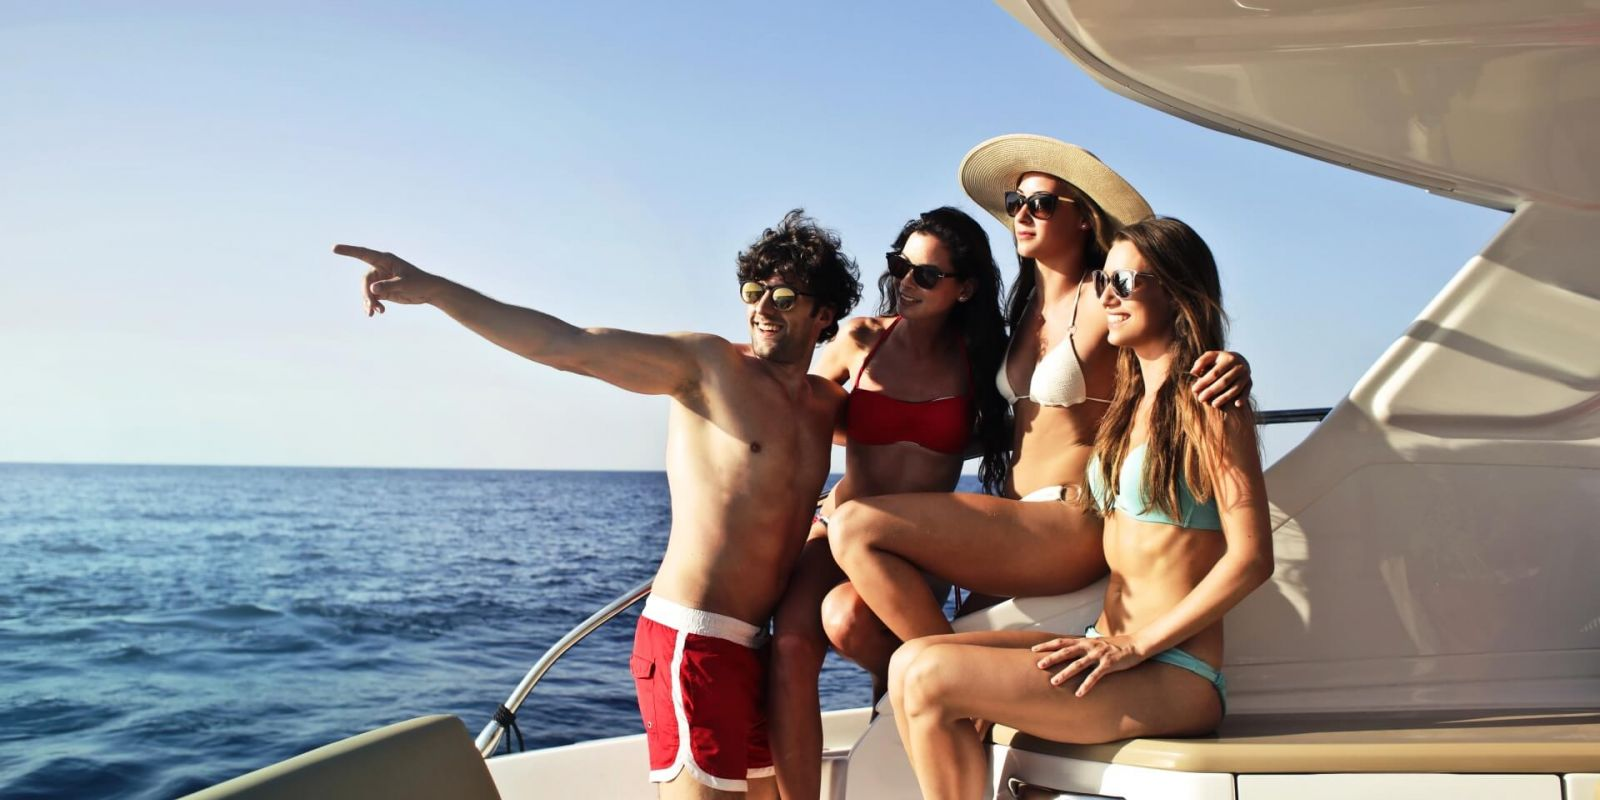 https://www.talamare.com/medias/A large group of people enjoying a beautiful day during their yacht charter